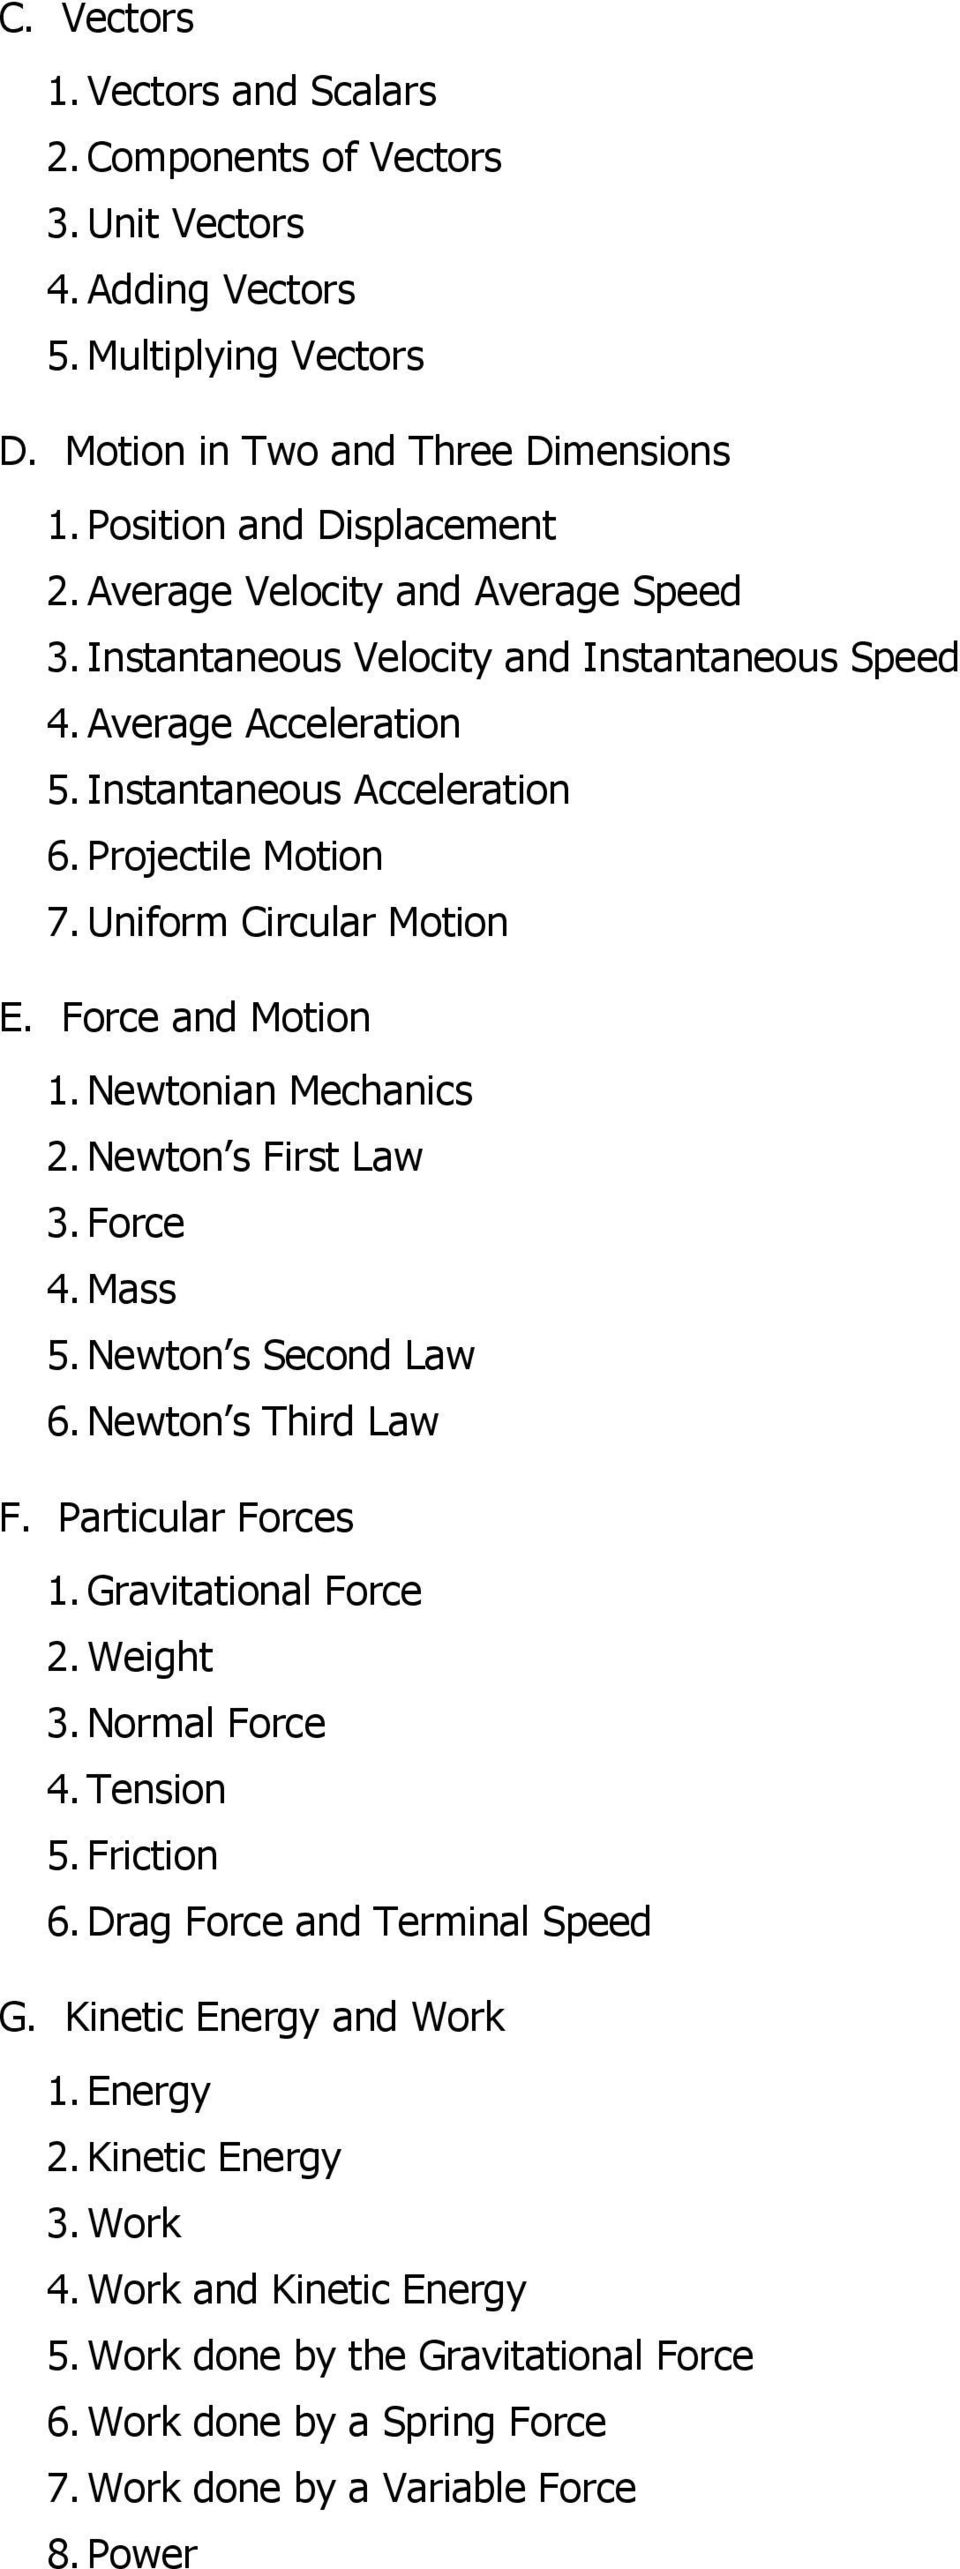 Force and Motion 1. Newtonian Mechanics 2. Newton s First Law 3. Force 4. Mass 5. Newton s Second Law 6. Newton s Third Law F. Particular Forces 1. Gravitational Force 2. Weight 3. Normal Force 4.